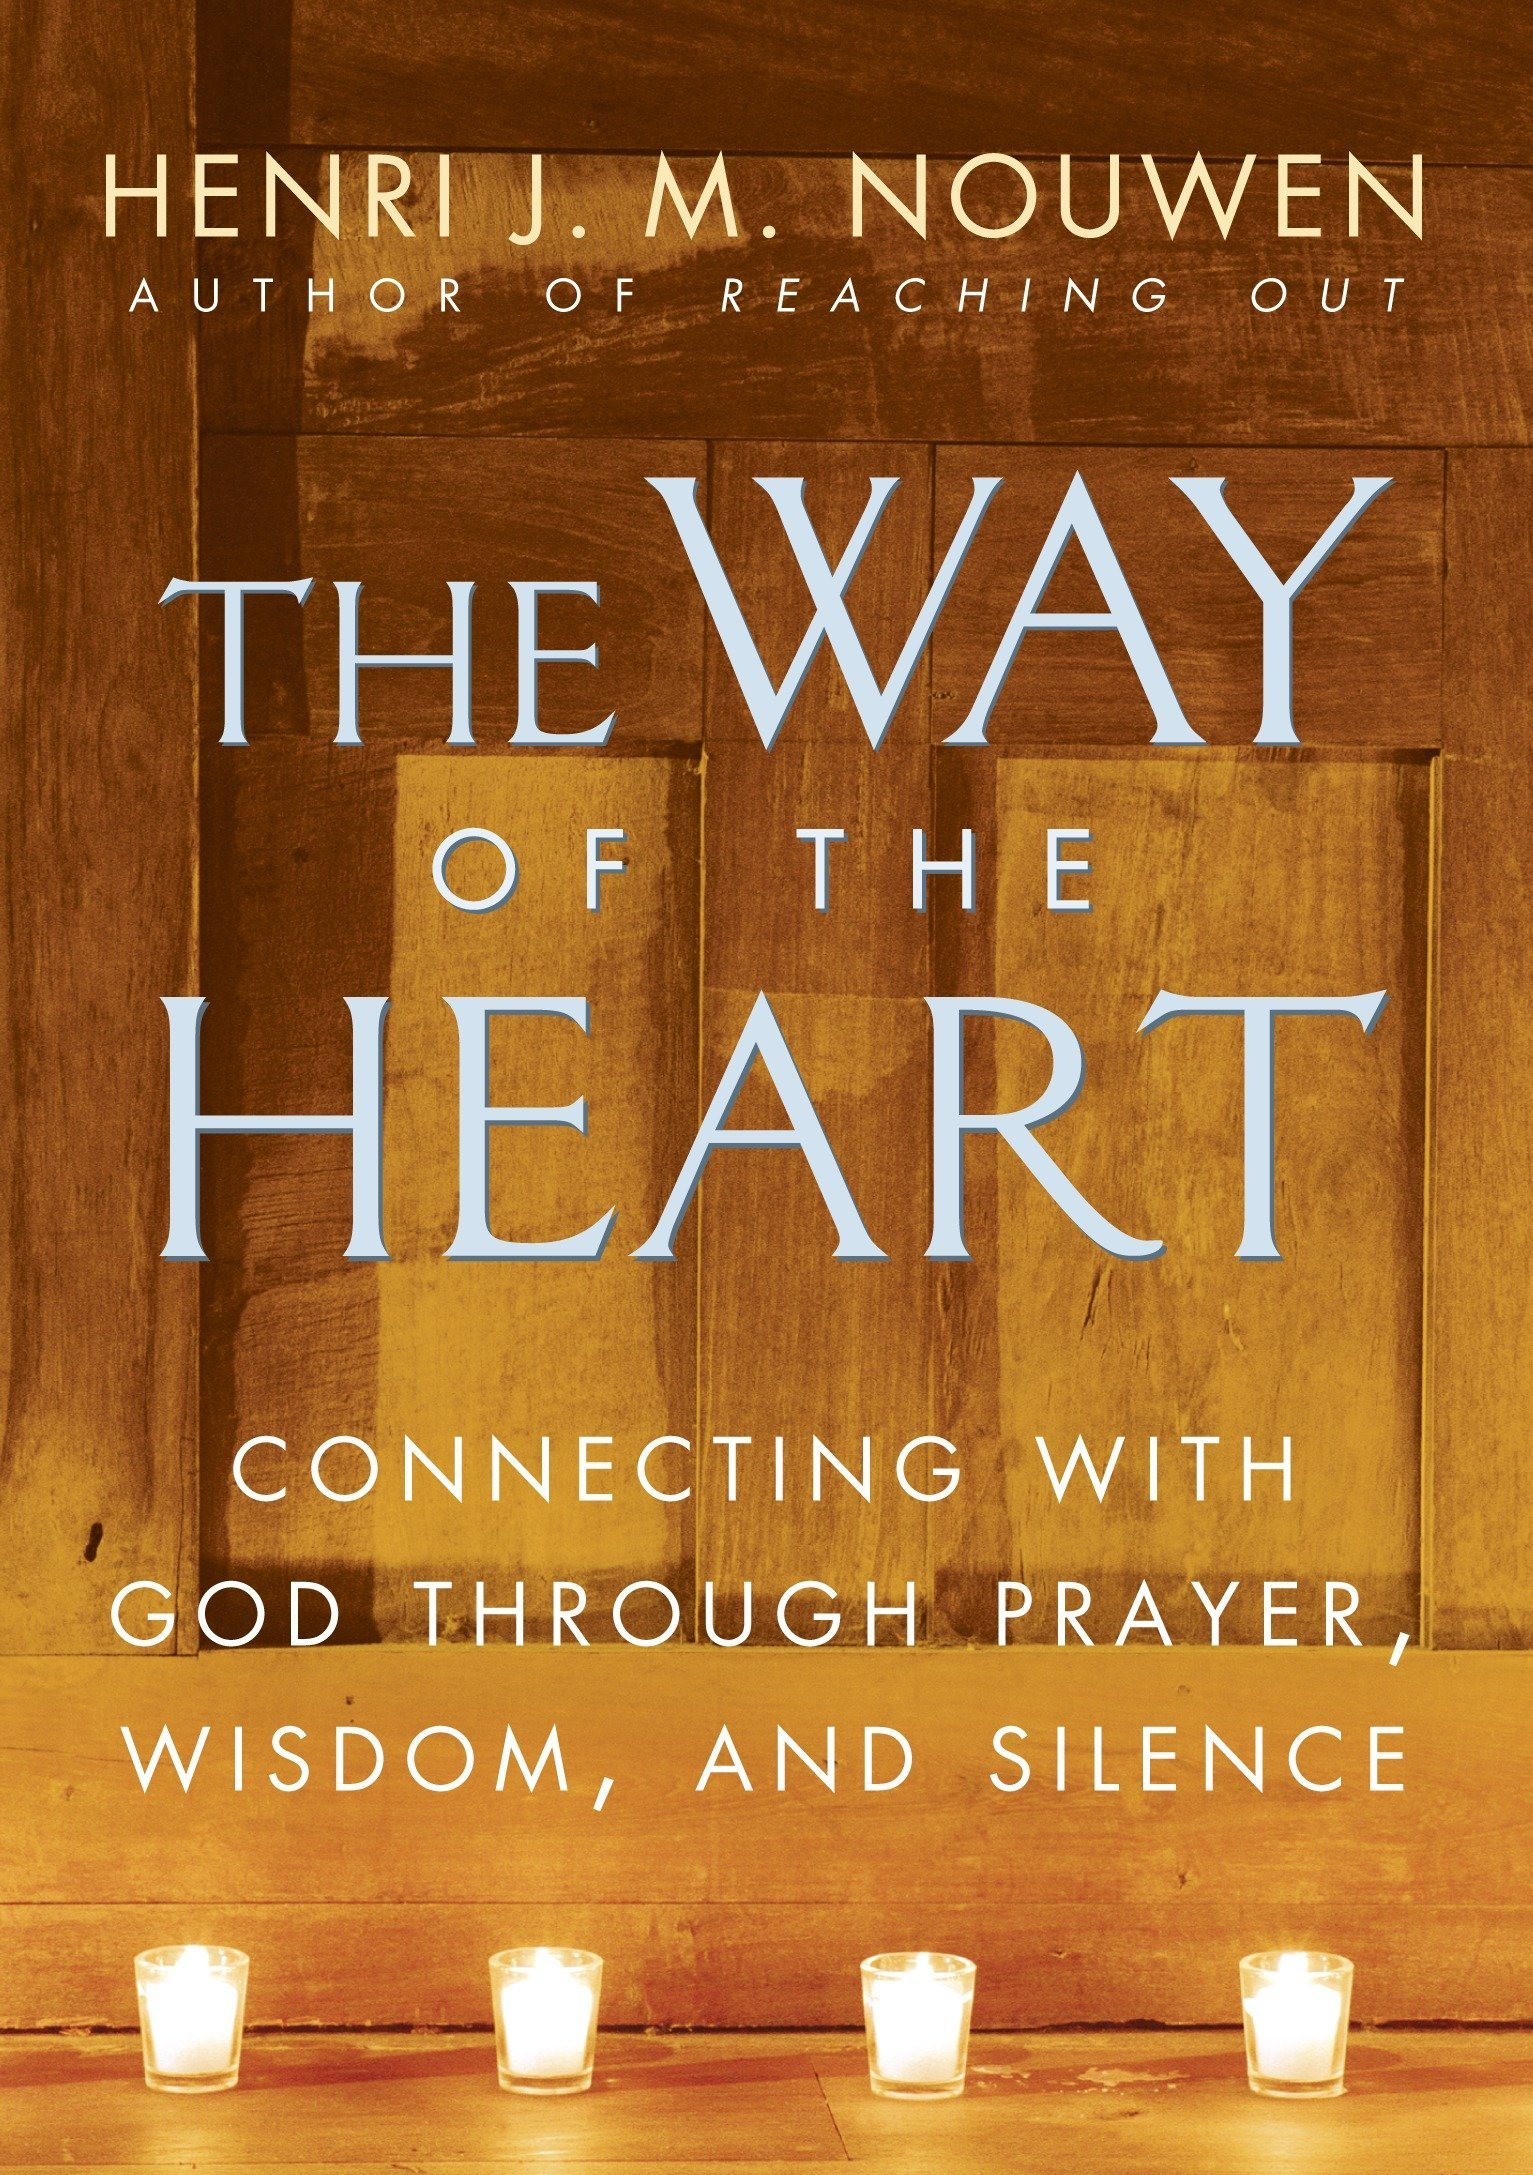 The Way Of The Heart Connecting With God Through Prayer Wisdom